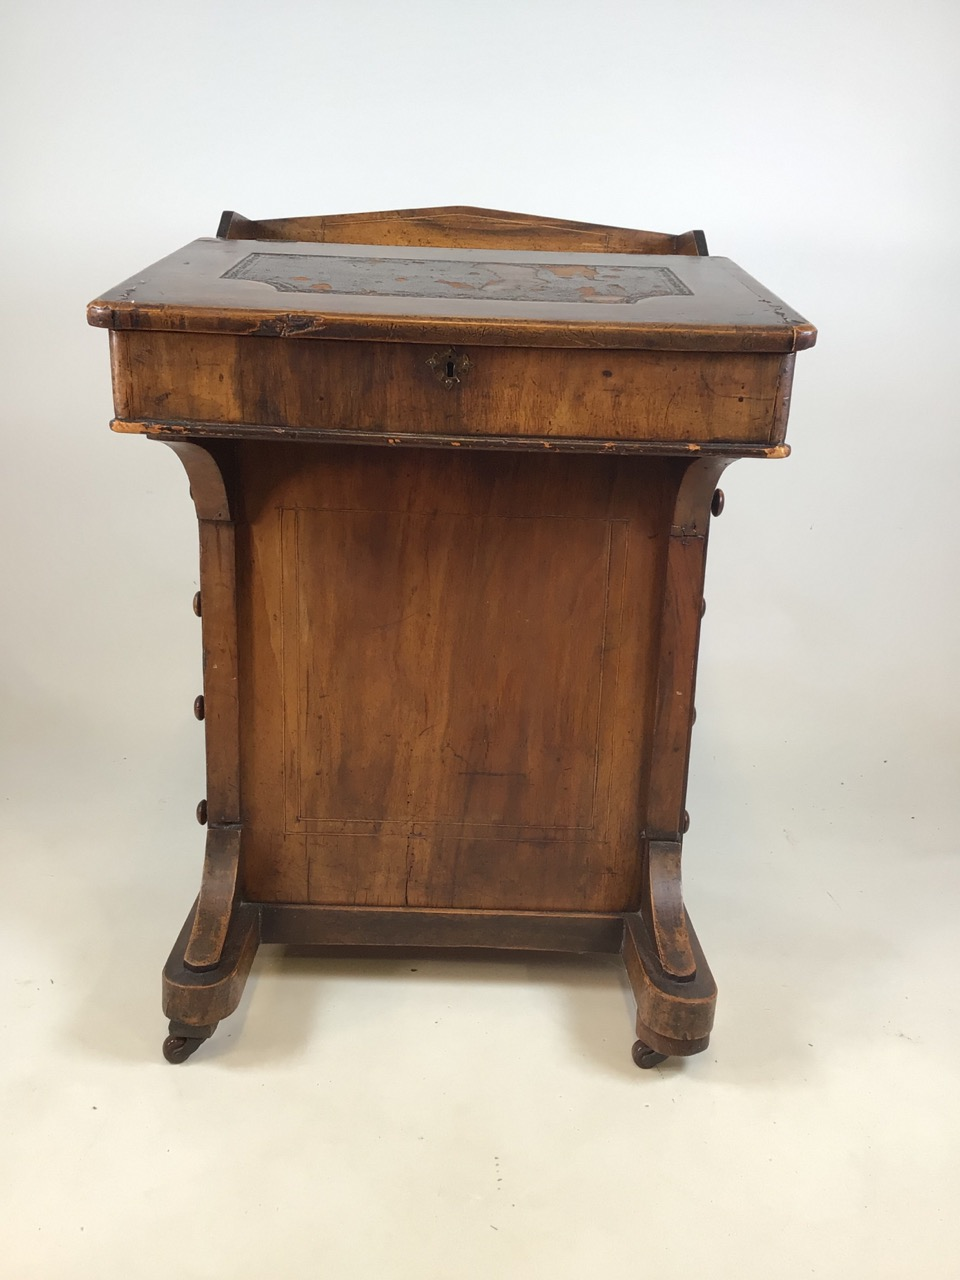 A Victorian inlaid davenport on ceramic castors with leather writing slope to interior desk. With